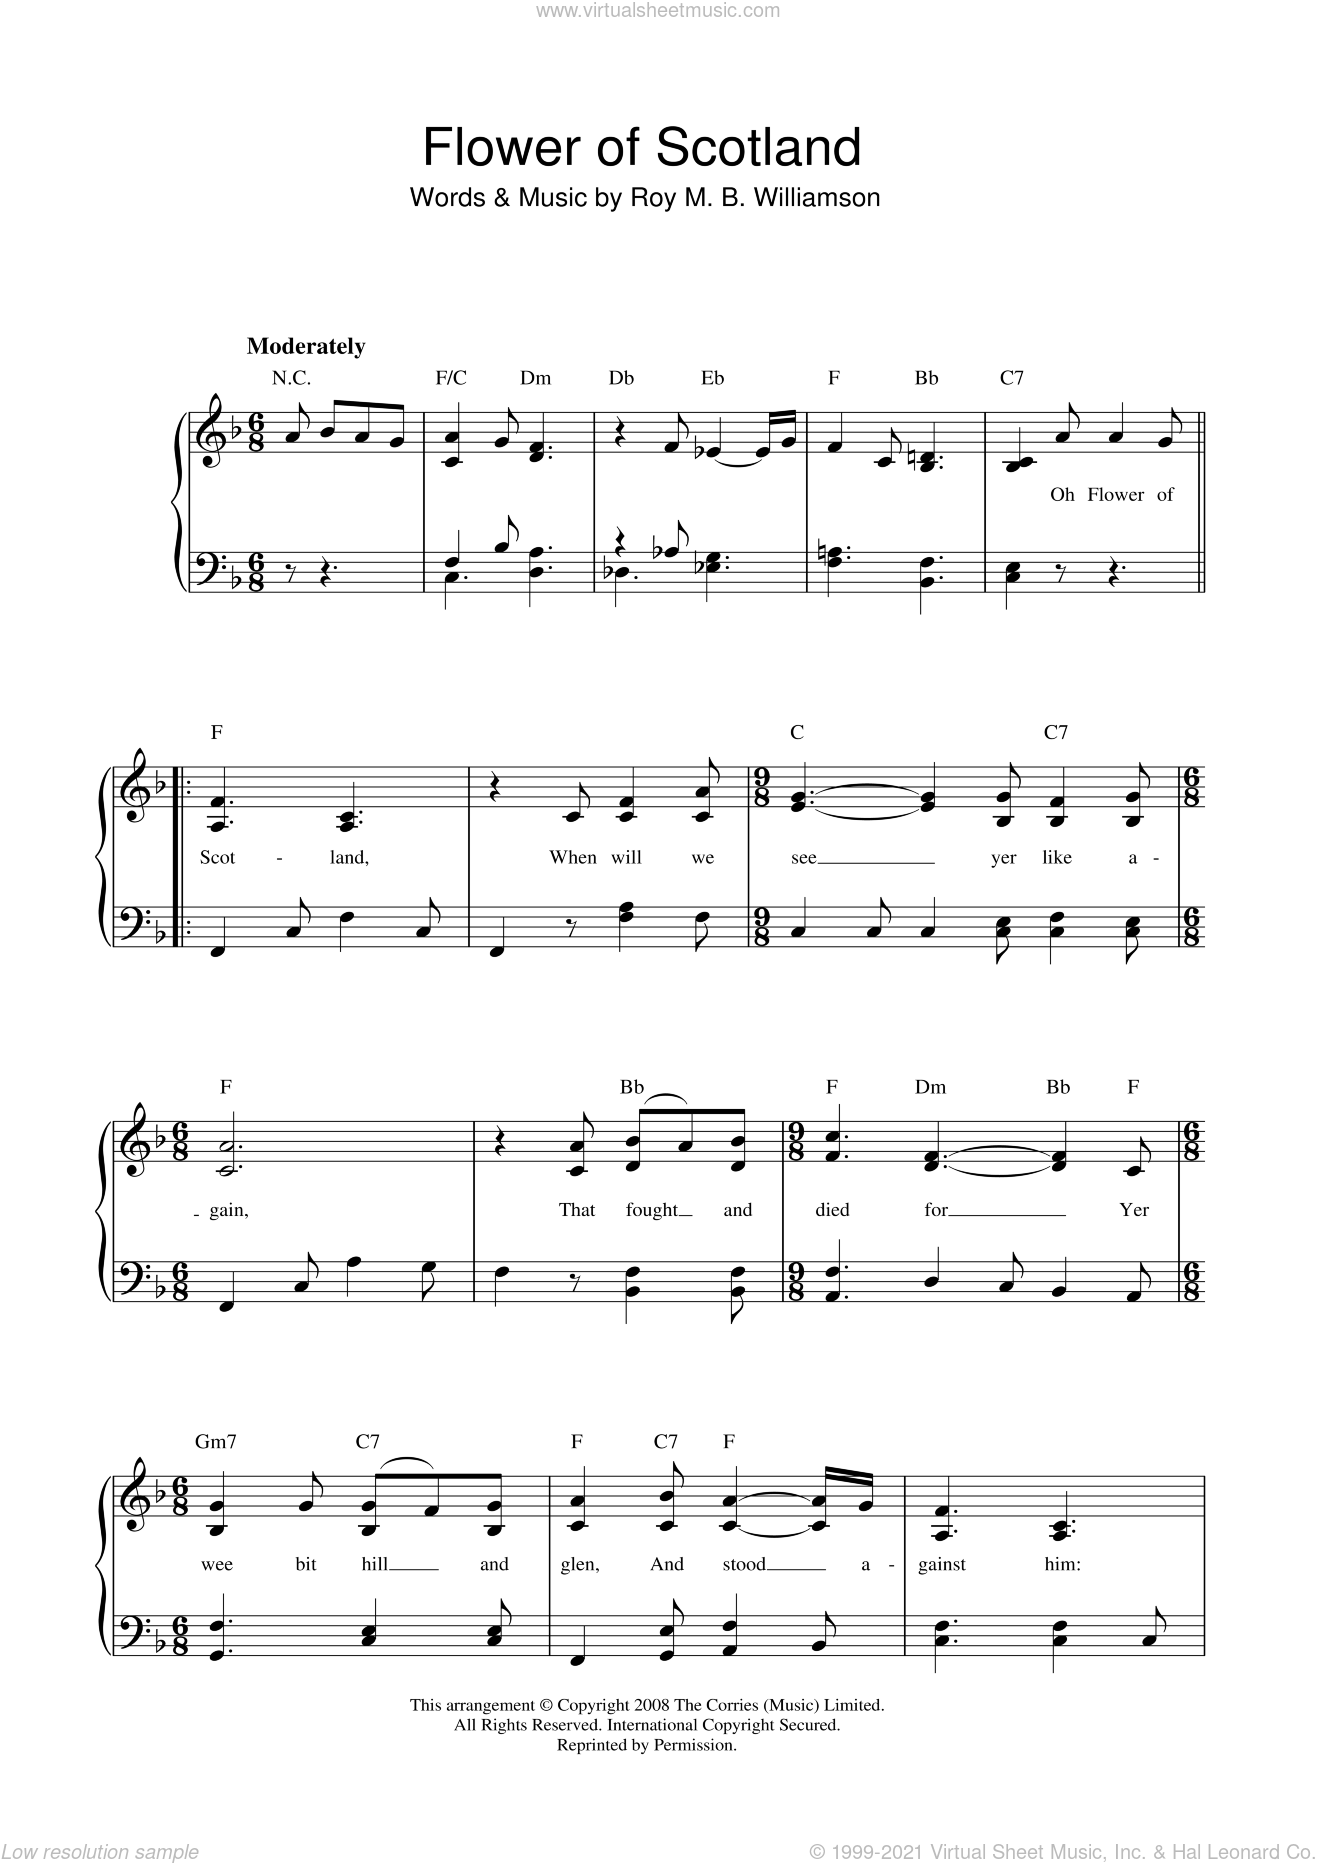 Flower Of Scotland (Unofficial Scottish National Anthem) sheet music for voice and piano by The Corries and Roy M. B. Williamson, intermediate skill level